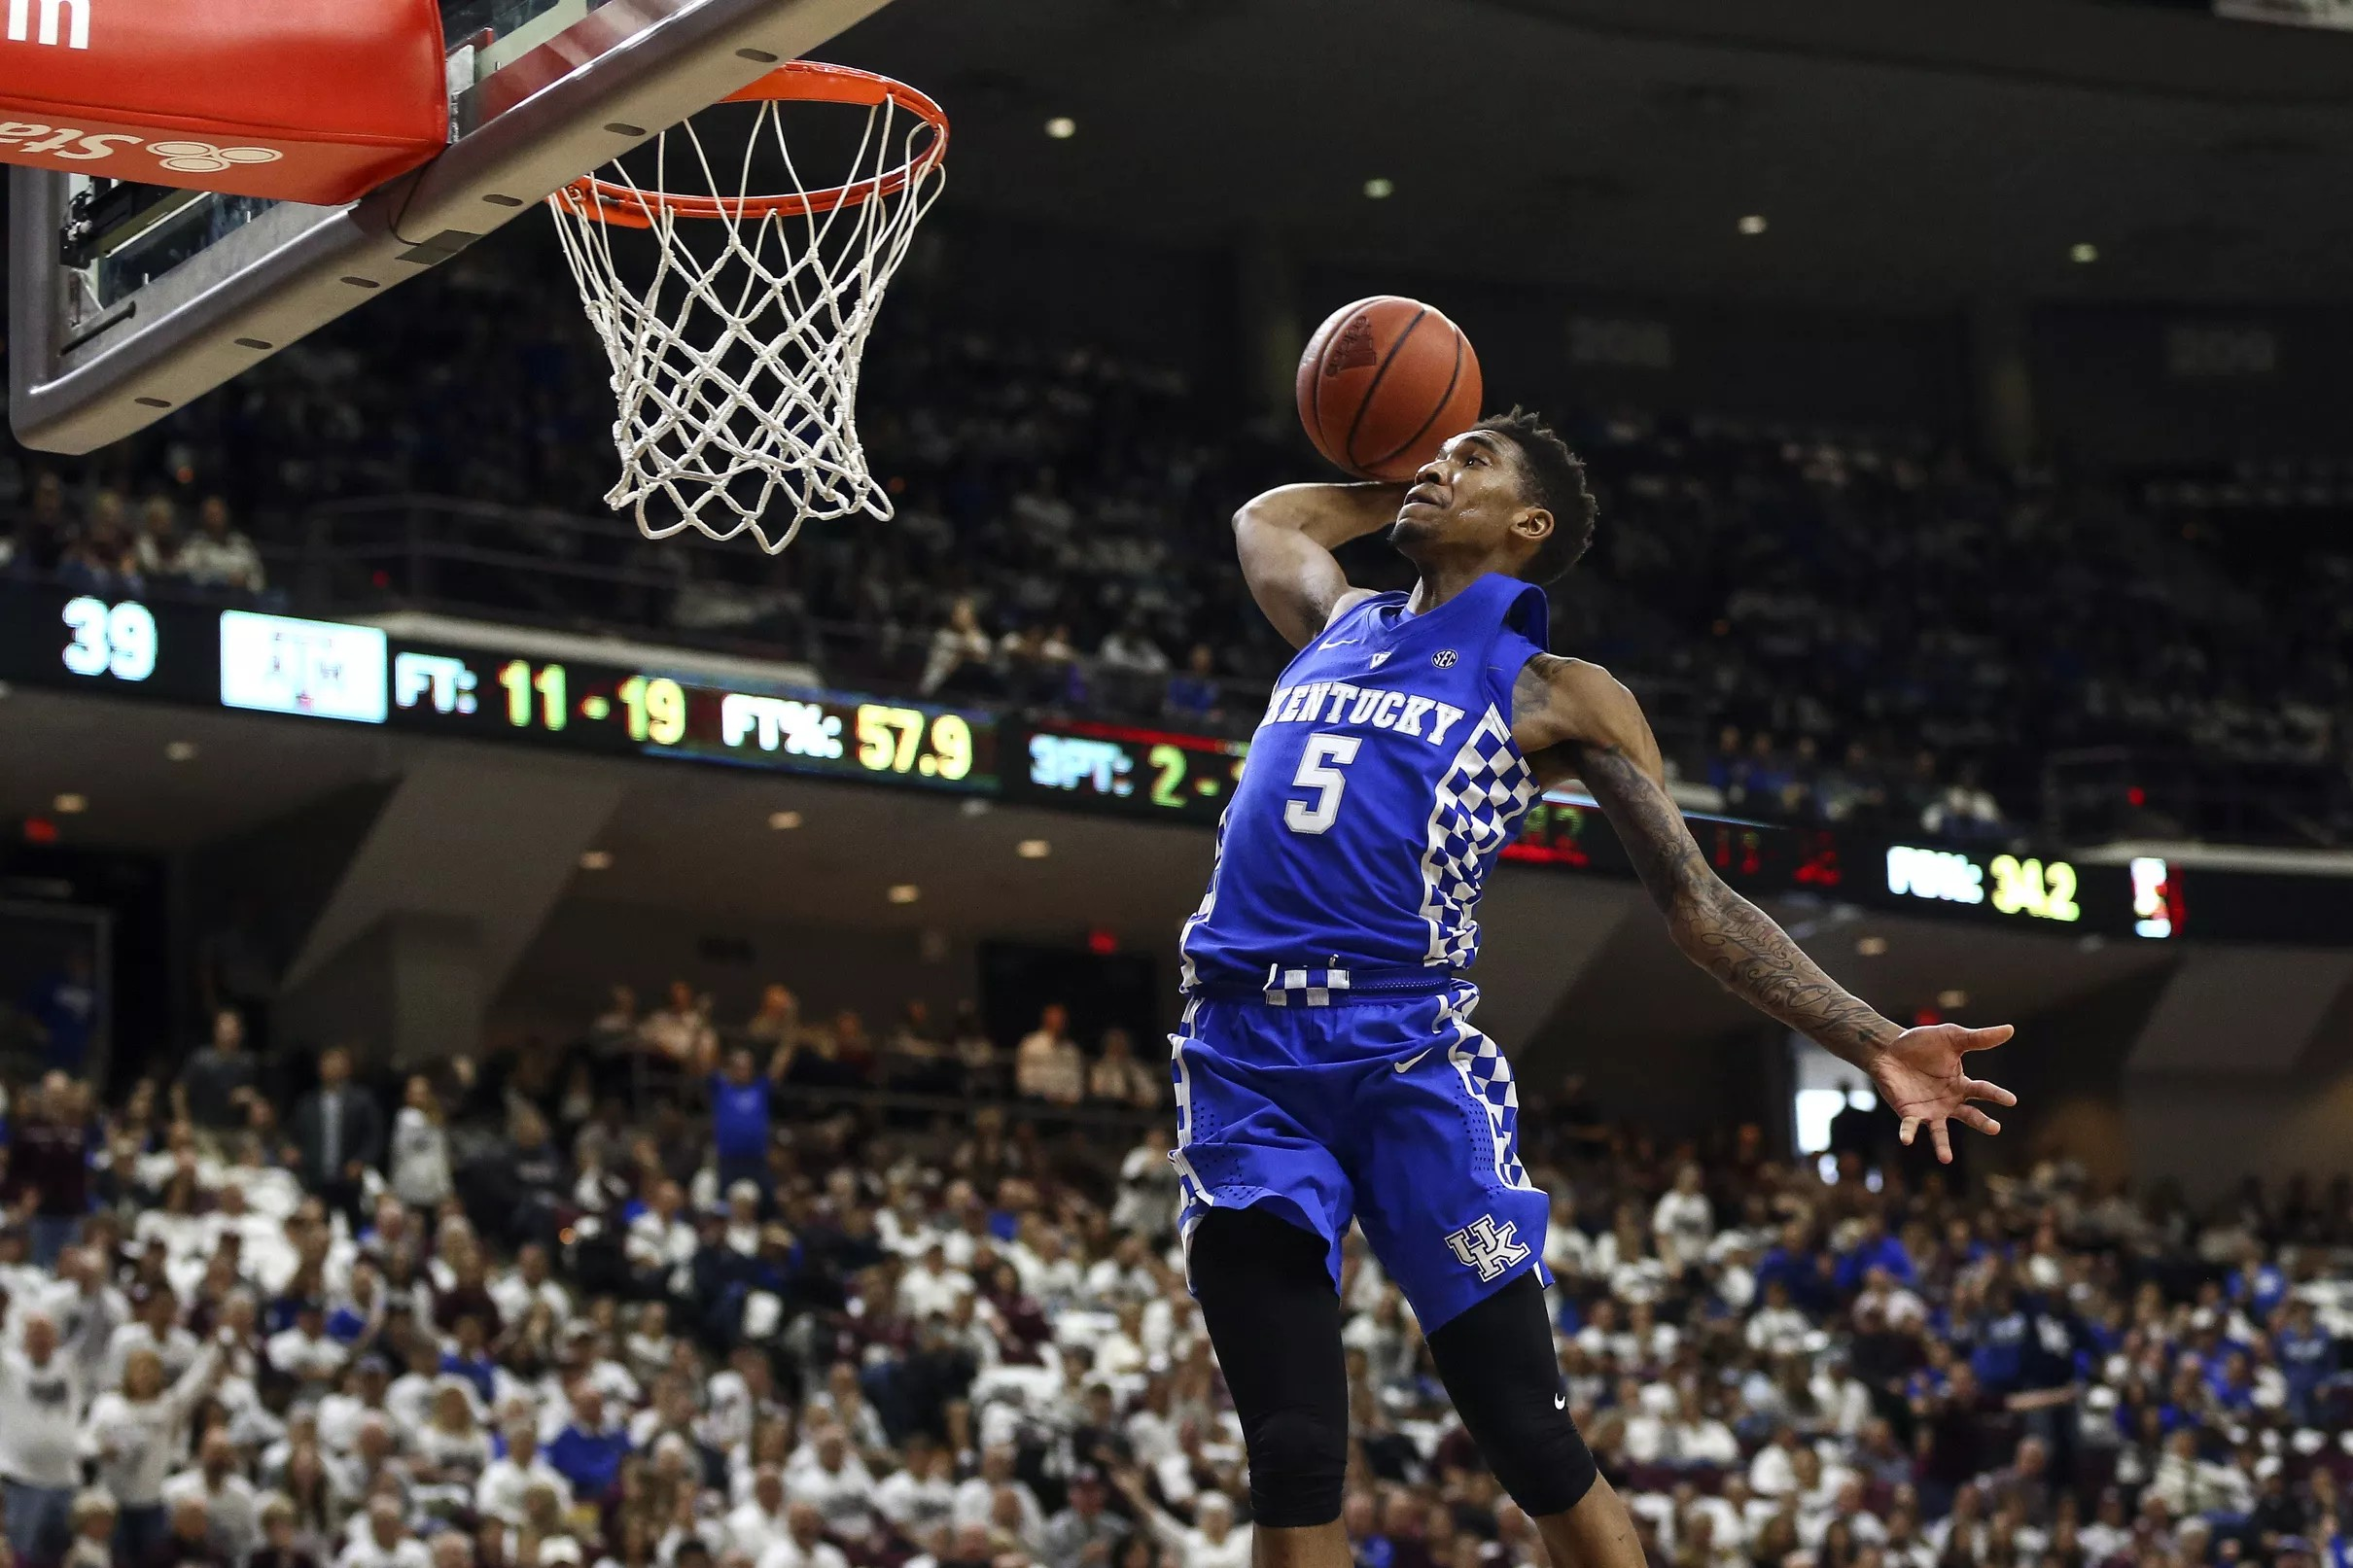 Kentucky S Malik Monk Named Ap Sec Player Of The Year: NBA Draft 2017 Scouting Profile: Malik Monk